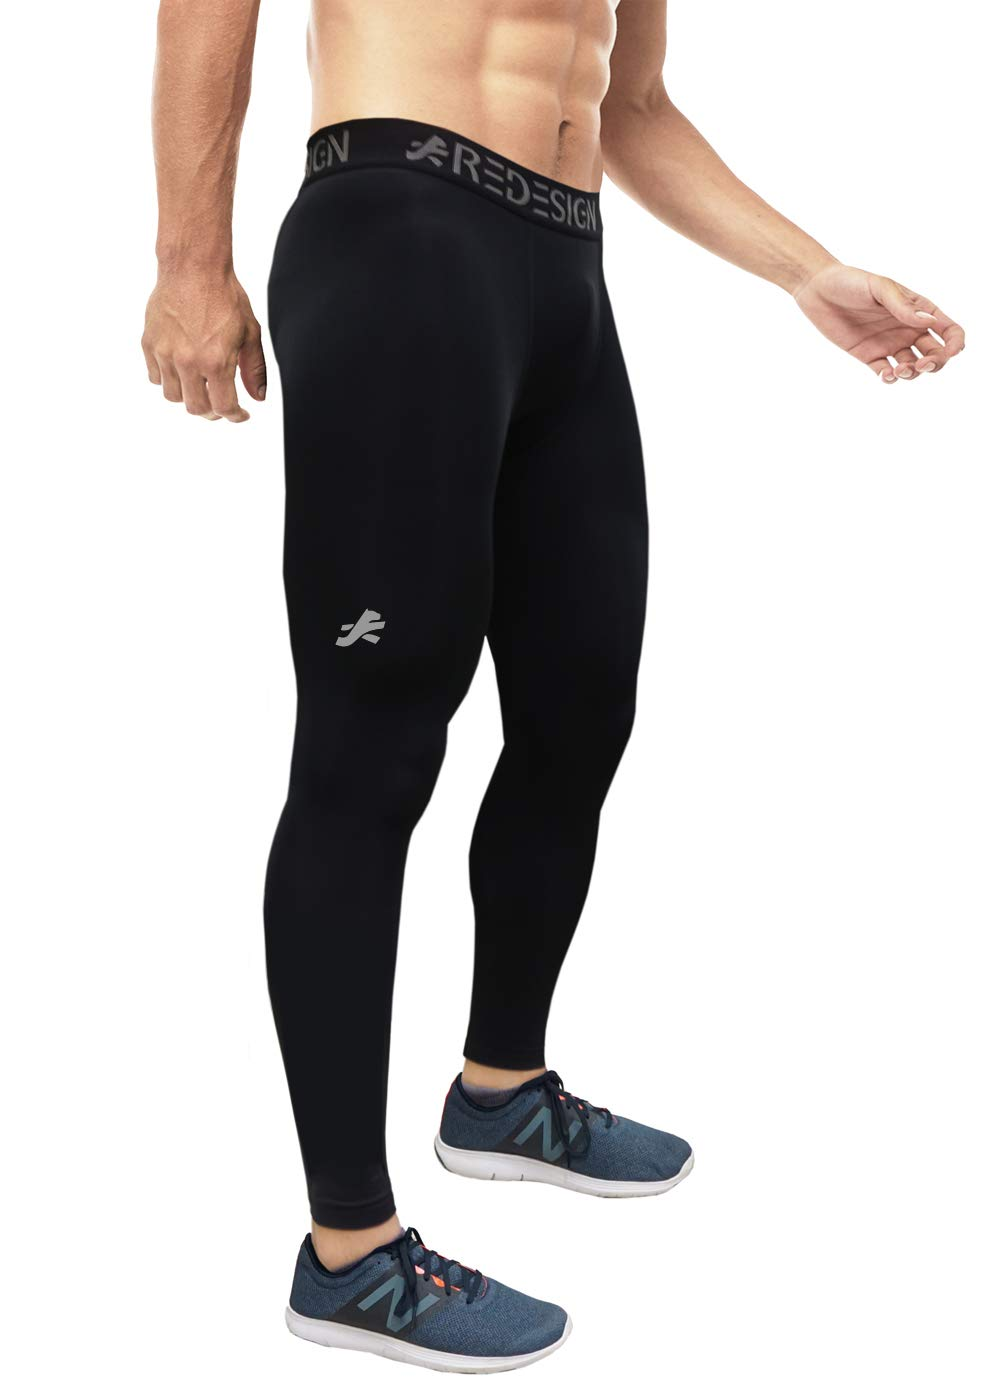 ReDesign Apparels Men's Nylon Compression Pants product image